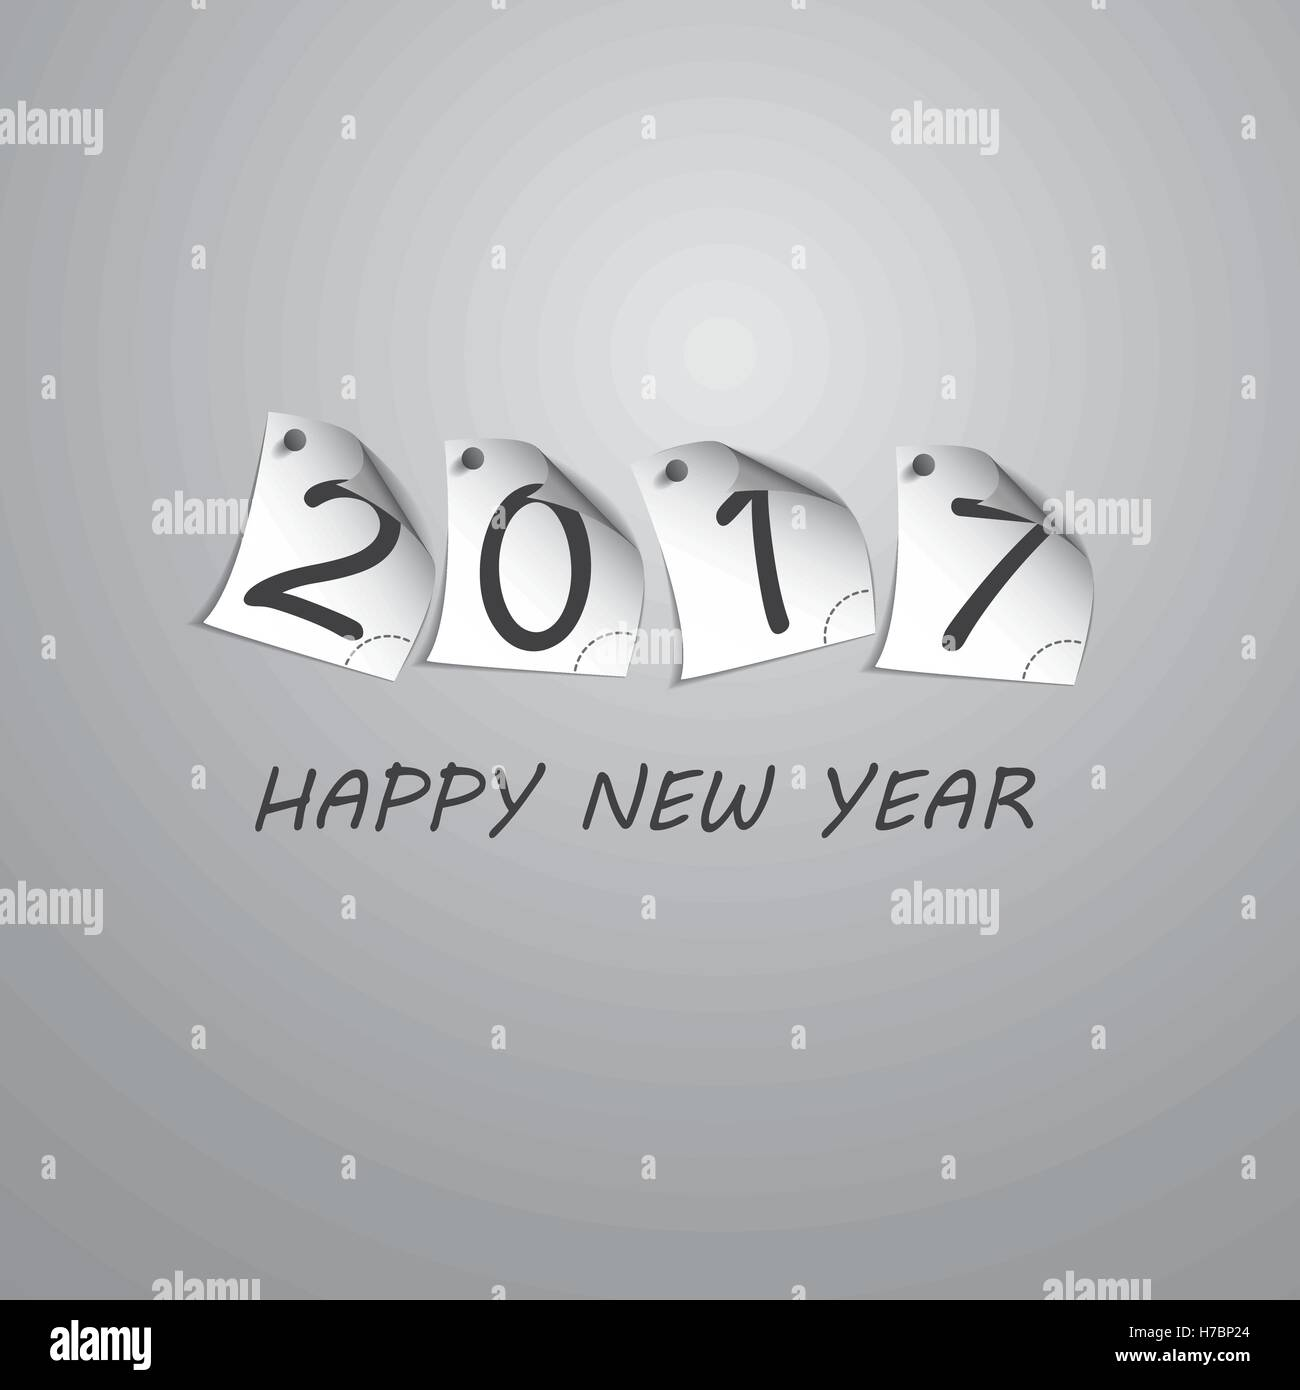 Best Wishes - Abstract Silver Grey New Year Card Template Design ...